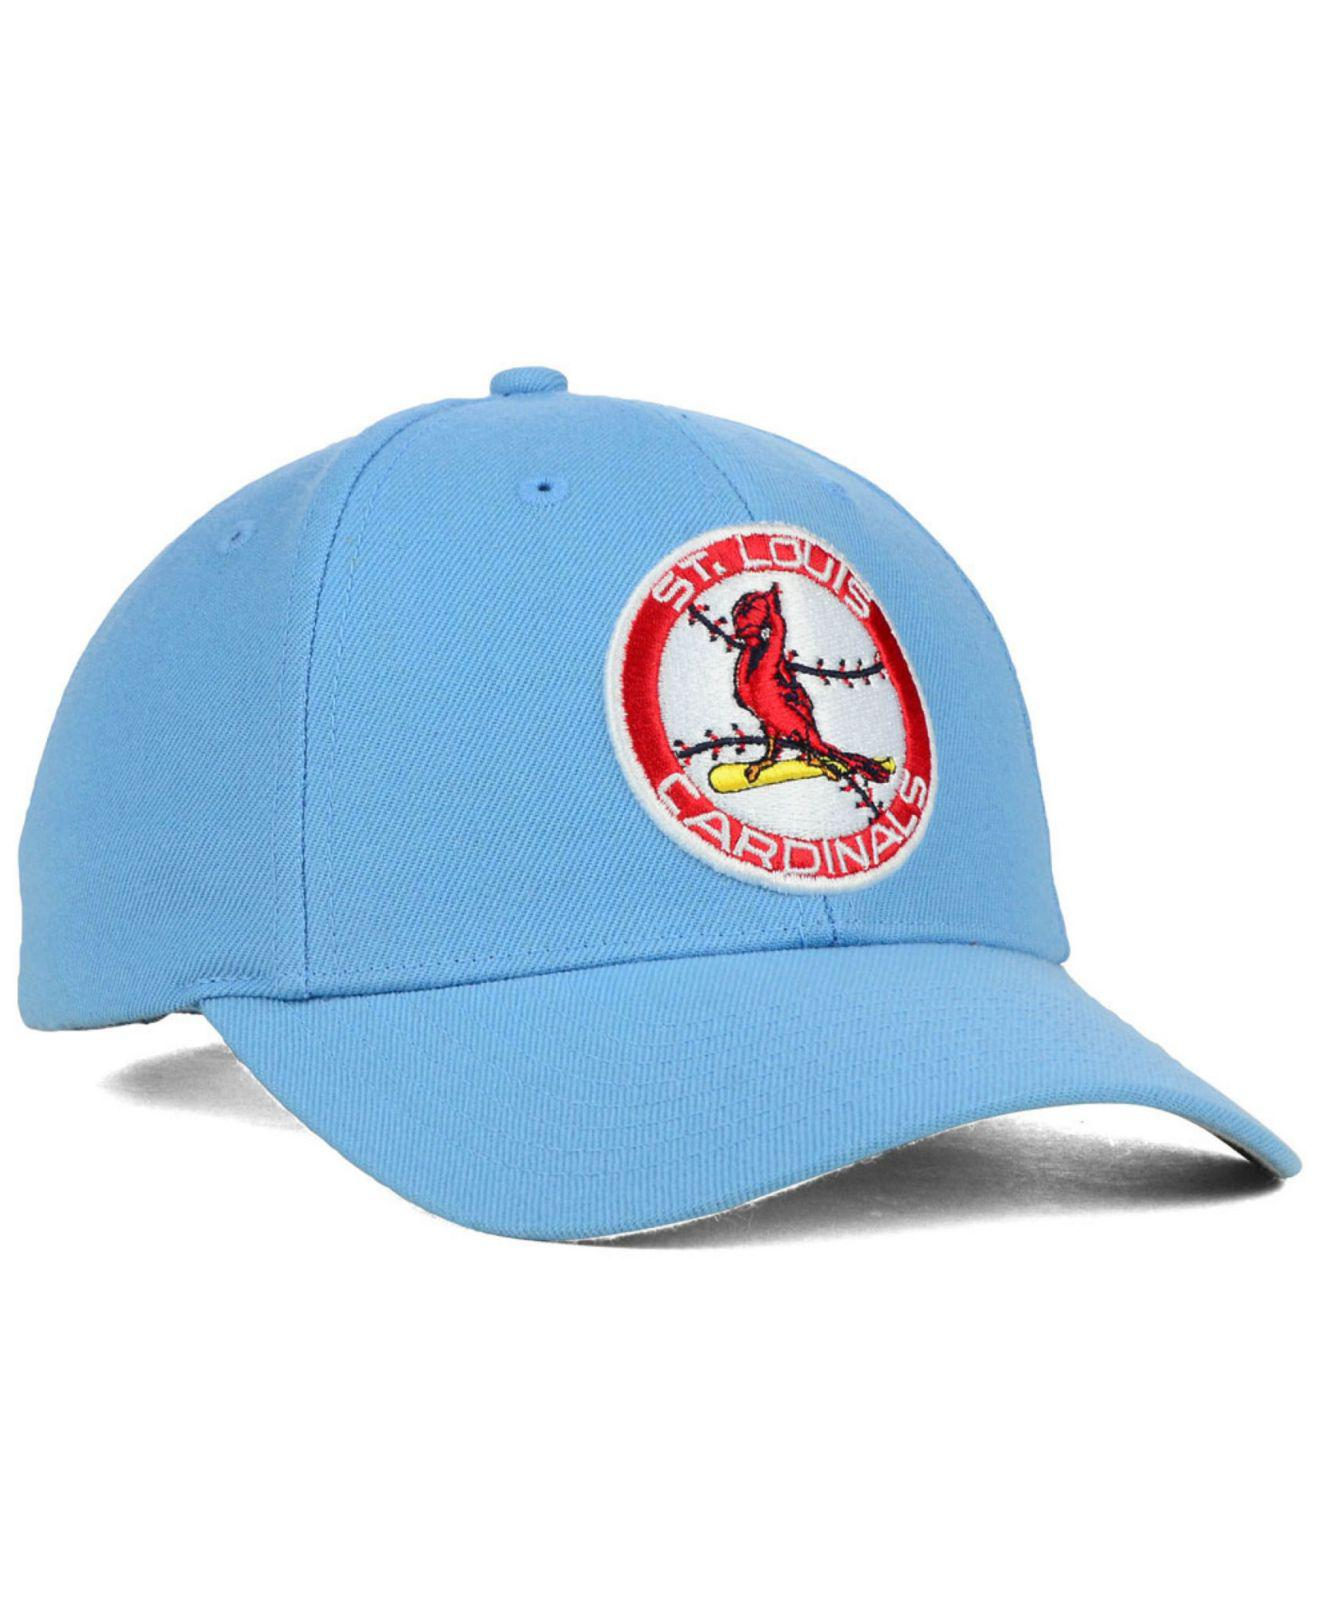 Lyst - 47 Brand St. Louis Cardinals Mvp Curved Cap in Blue for Men 8602dc7cd9c